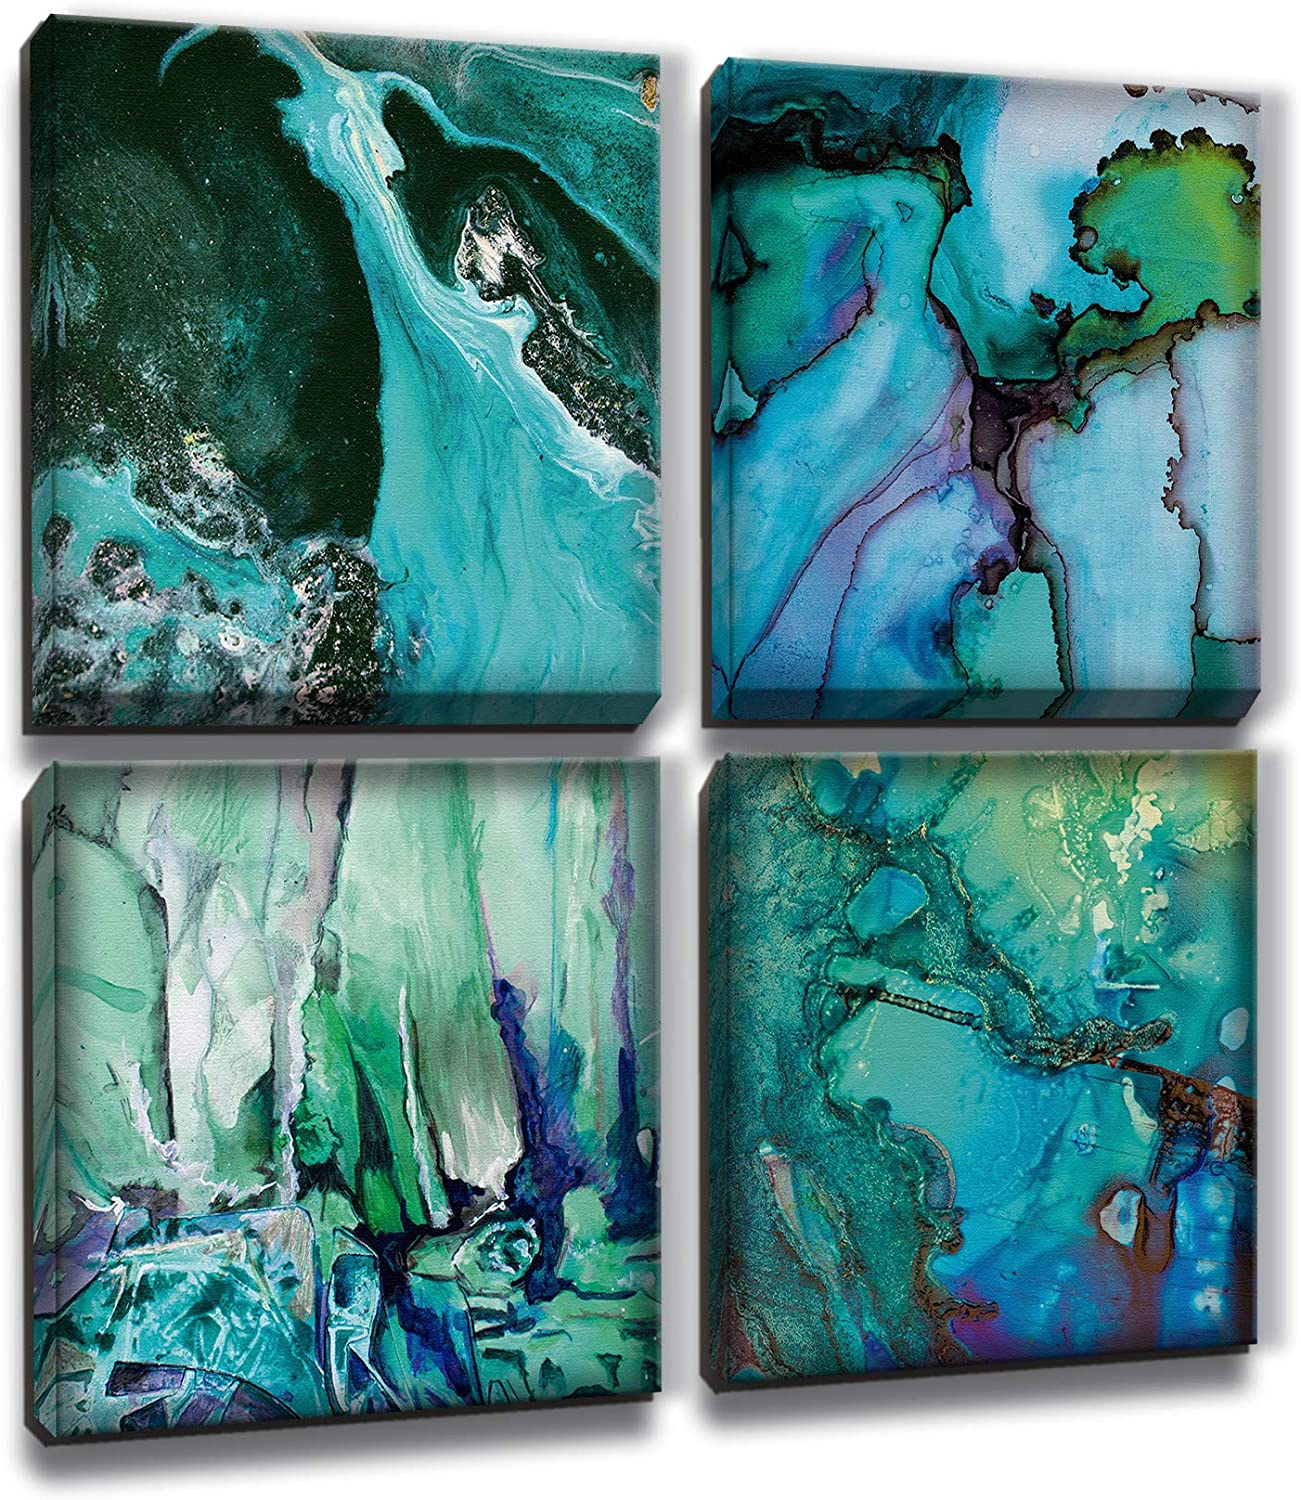 MARG Wall Decorations for Living Room, Abstract Blue and Green Canvas Wall Art, 4 Panels 12x12 inch/Piece, Home Decor